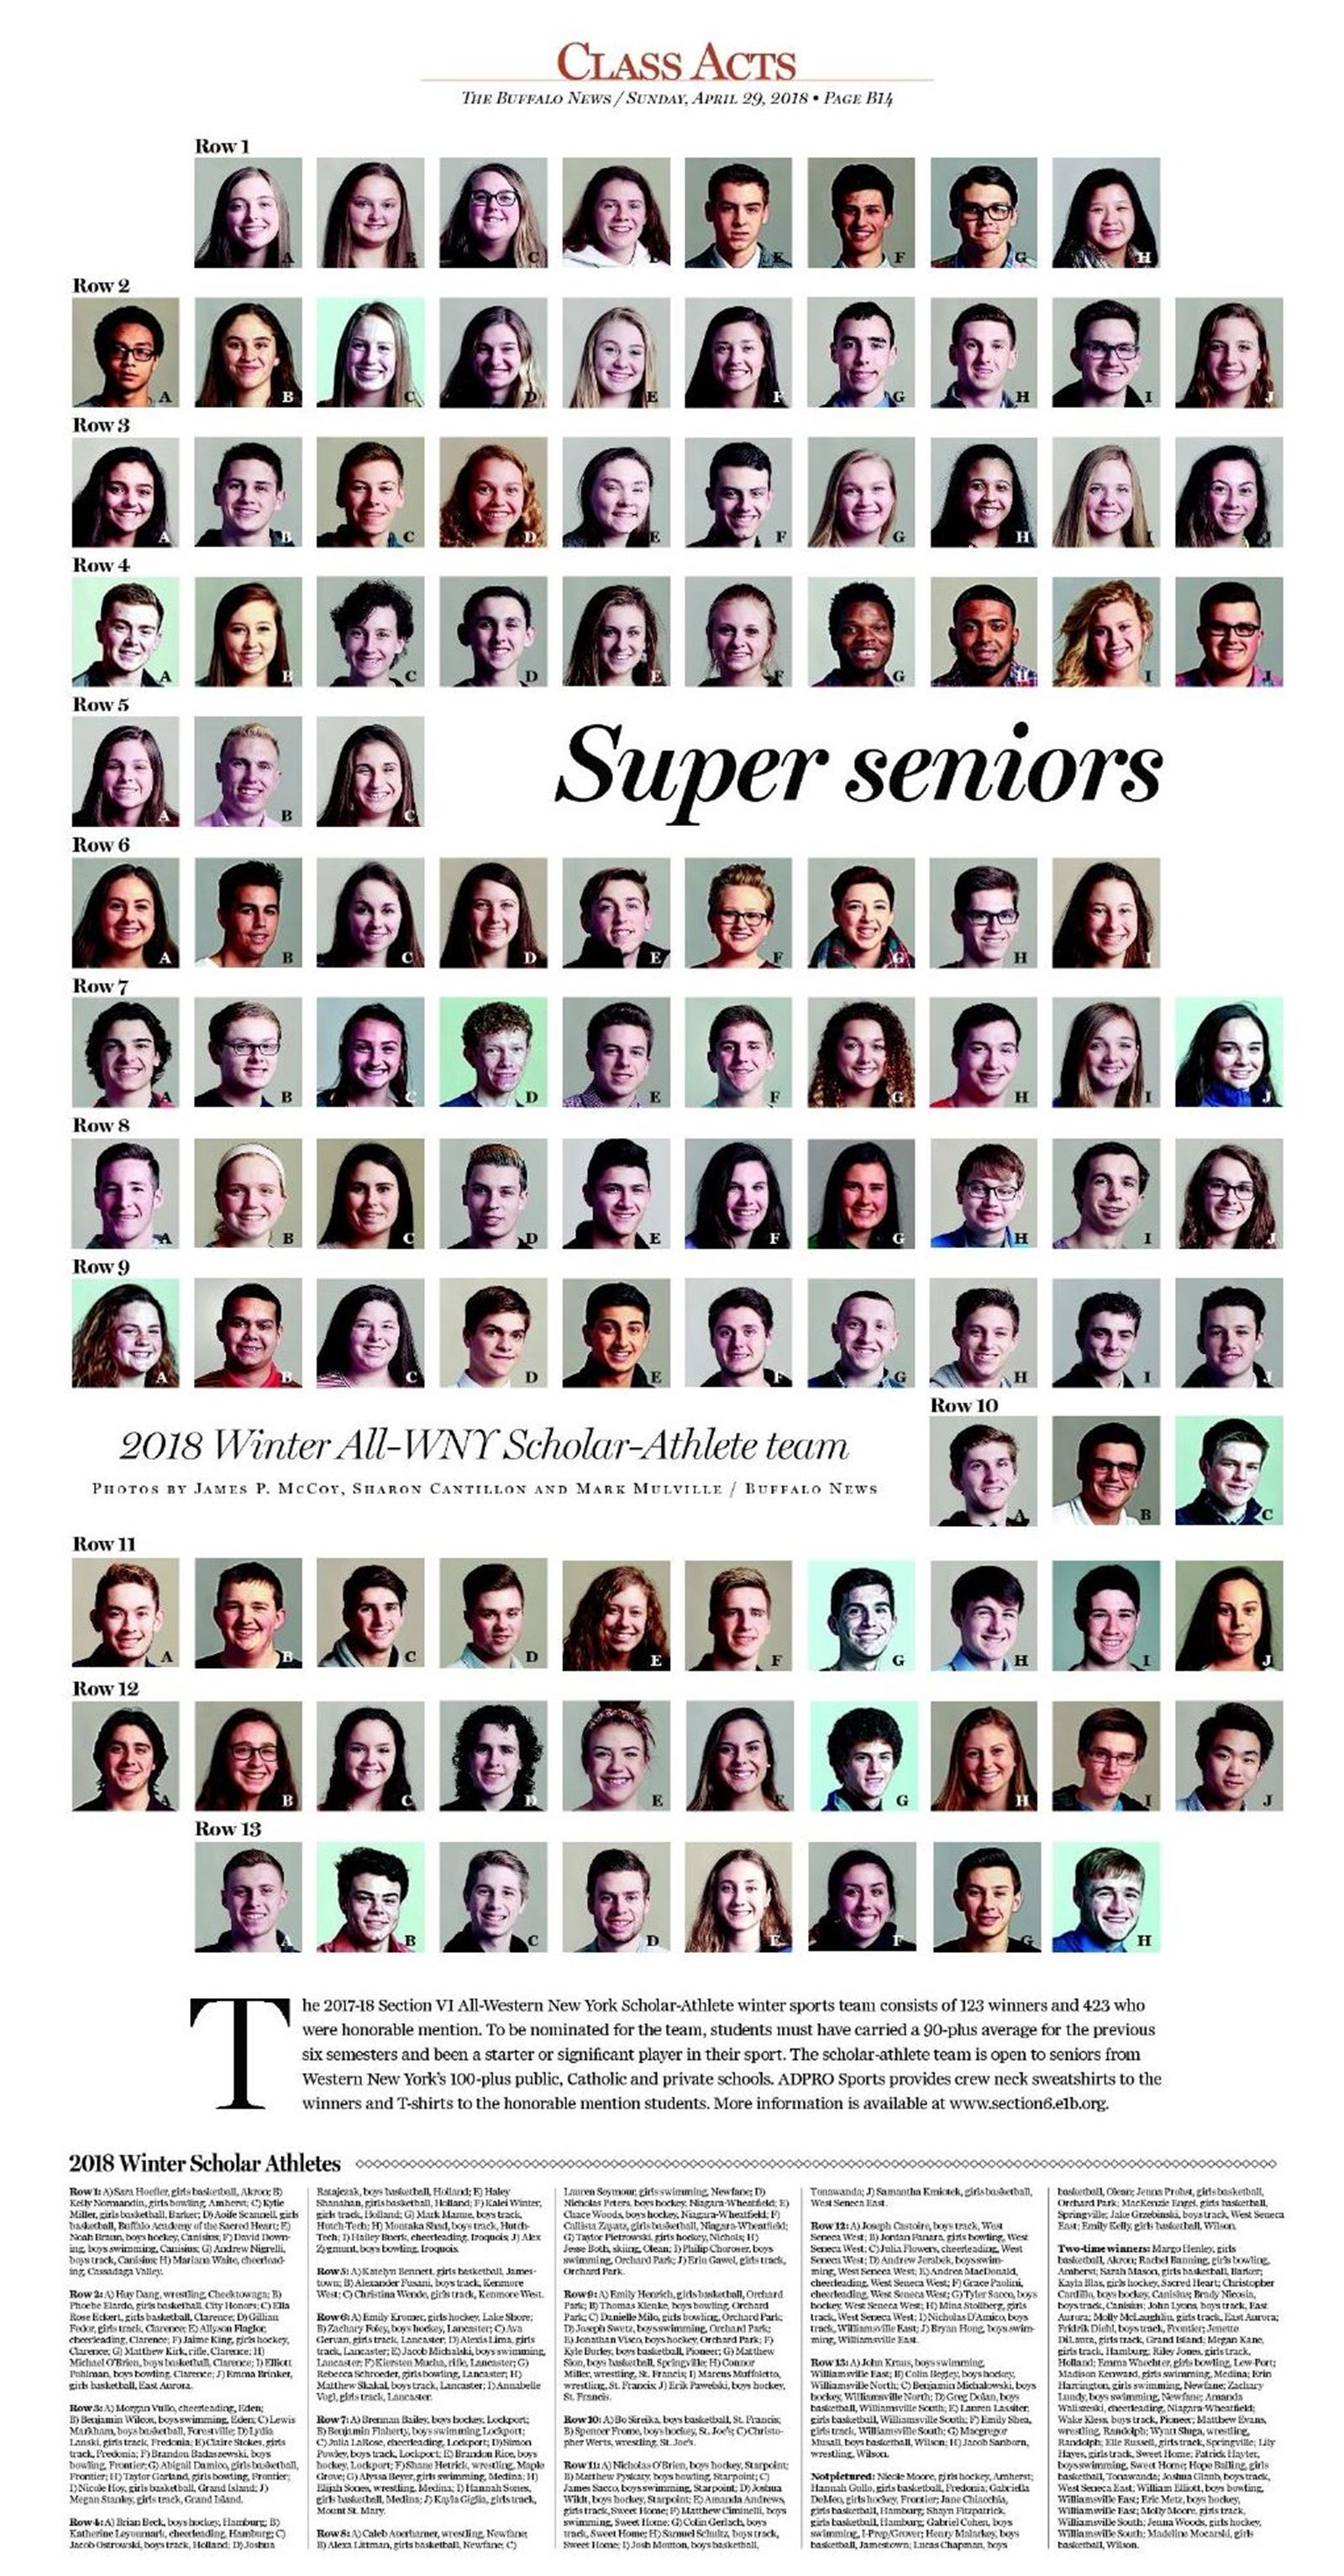 The All-WNY winter scholar-athlete team was featured in a color poster page in the April 29 Sunday sports section. To order a copy of that edition, while supplies last, email backissues@buffnews.com.